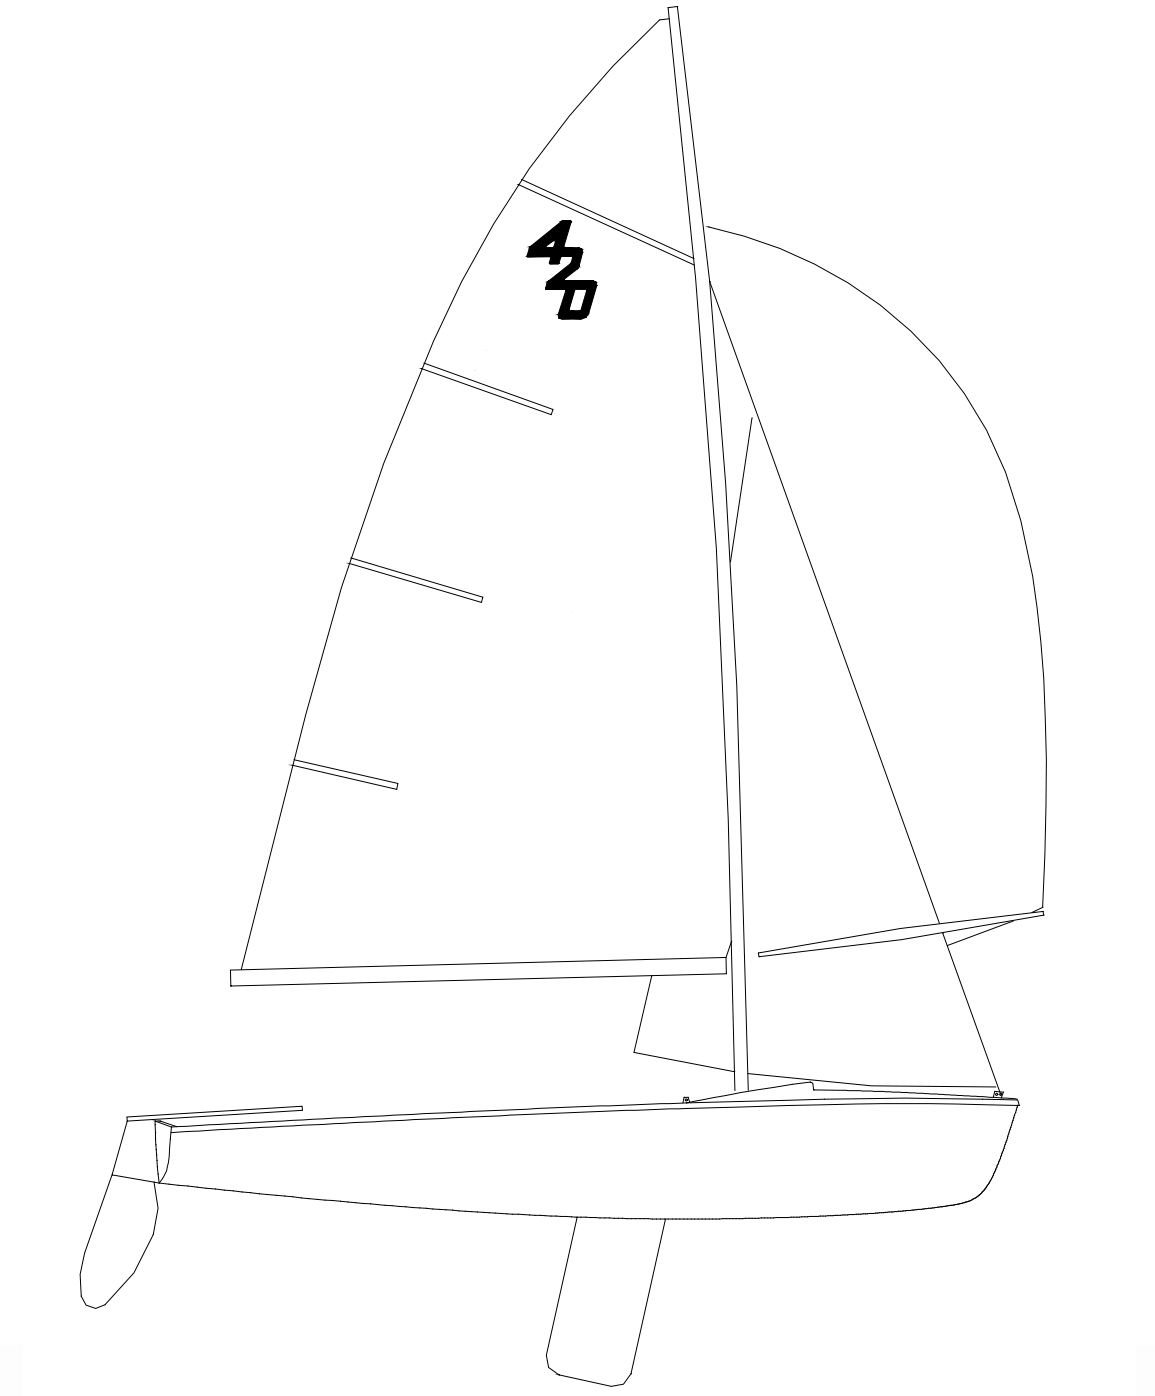 hight resolution of 420 class sailboat specifications